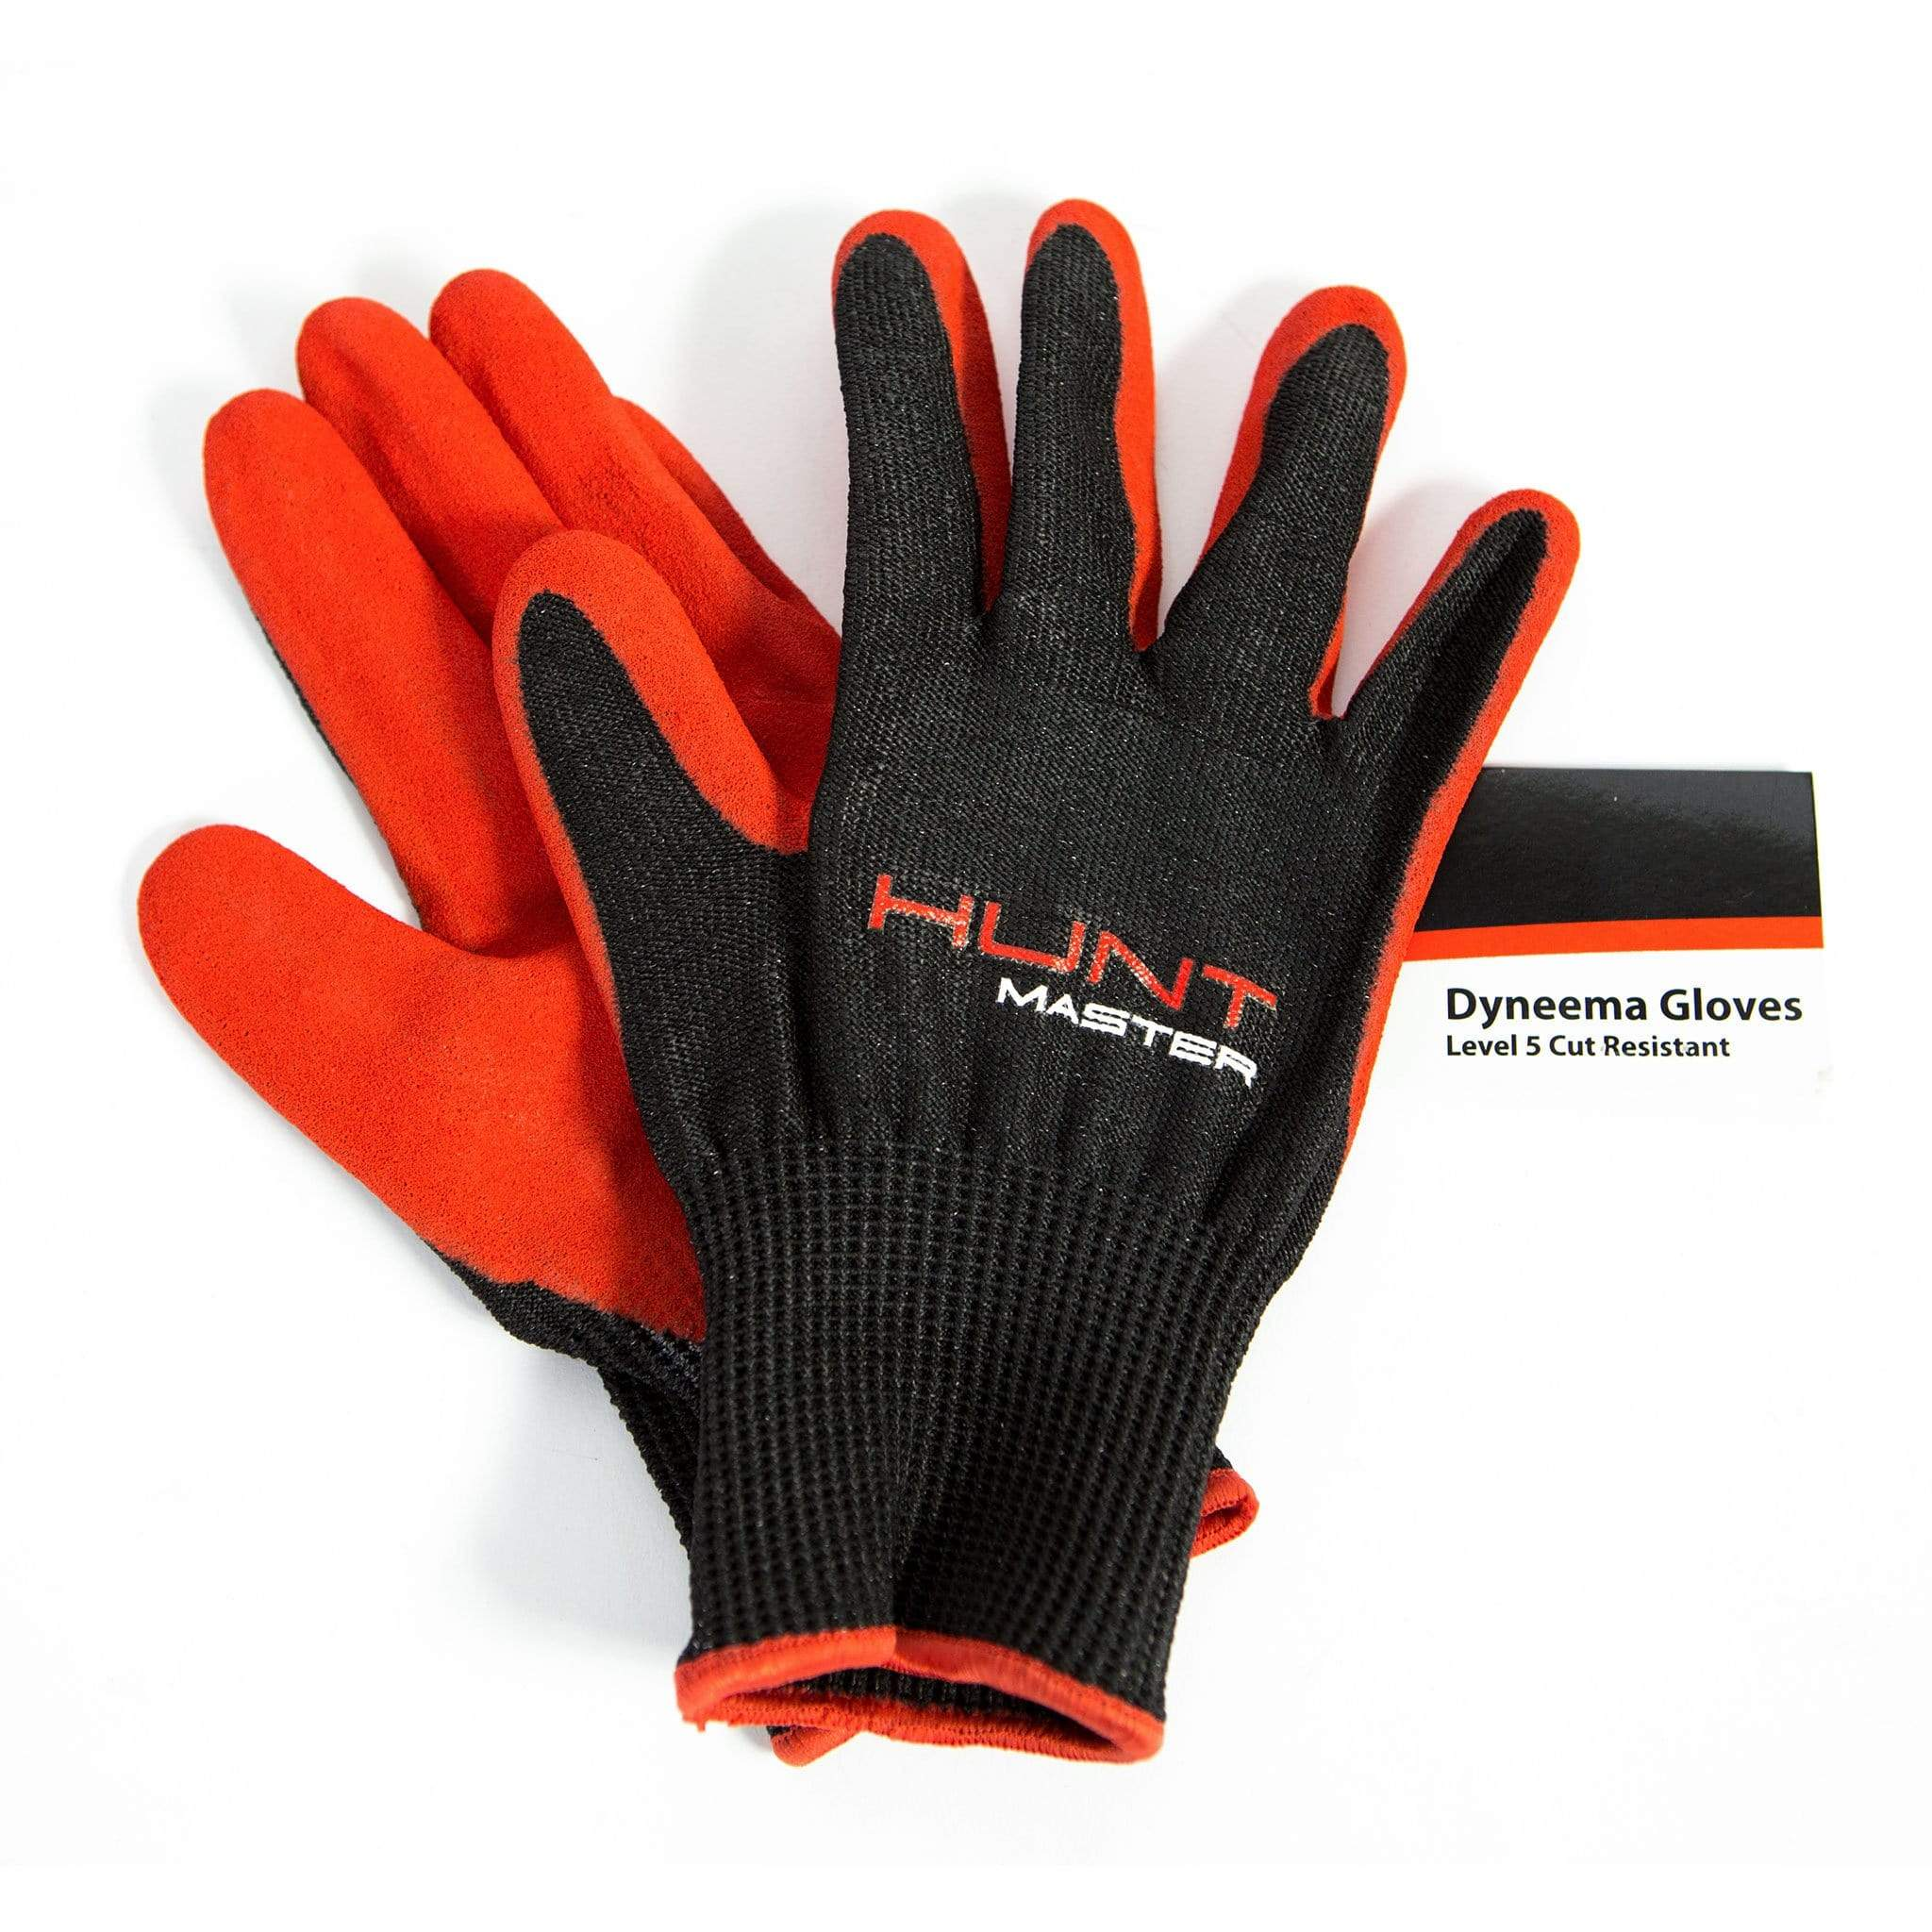 HuntMaster Tuff Diving Gloves - Anti-Cut Protection